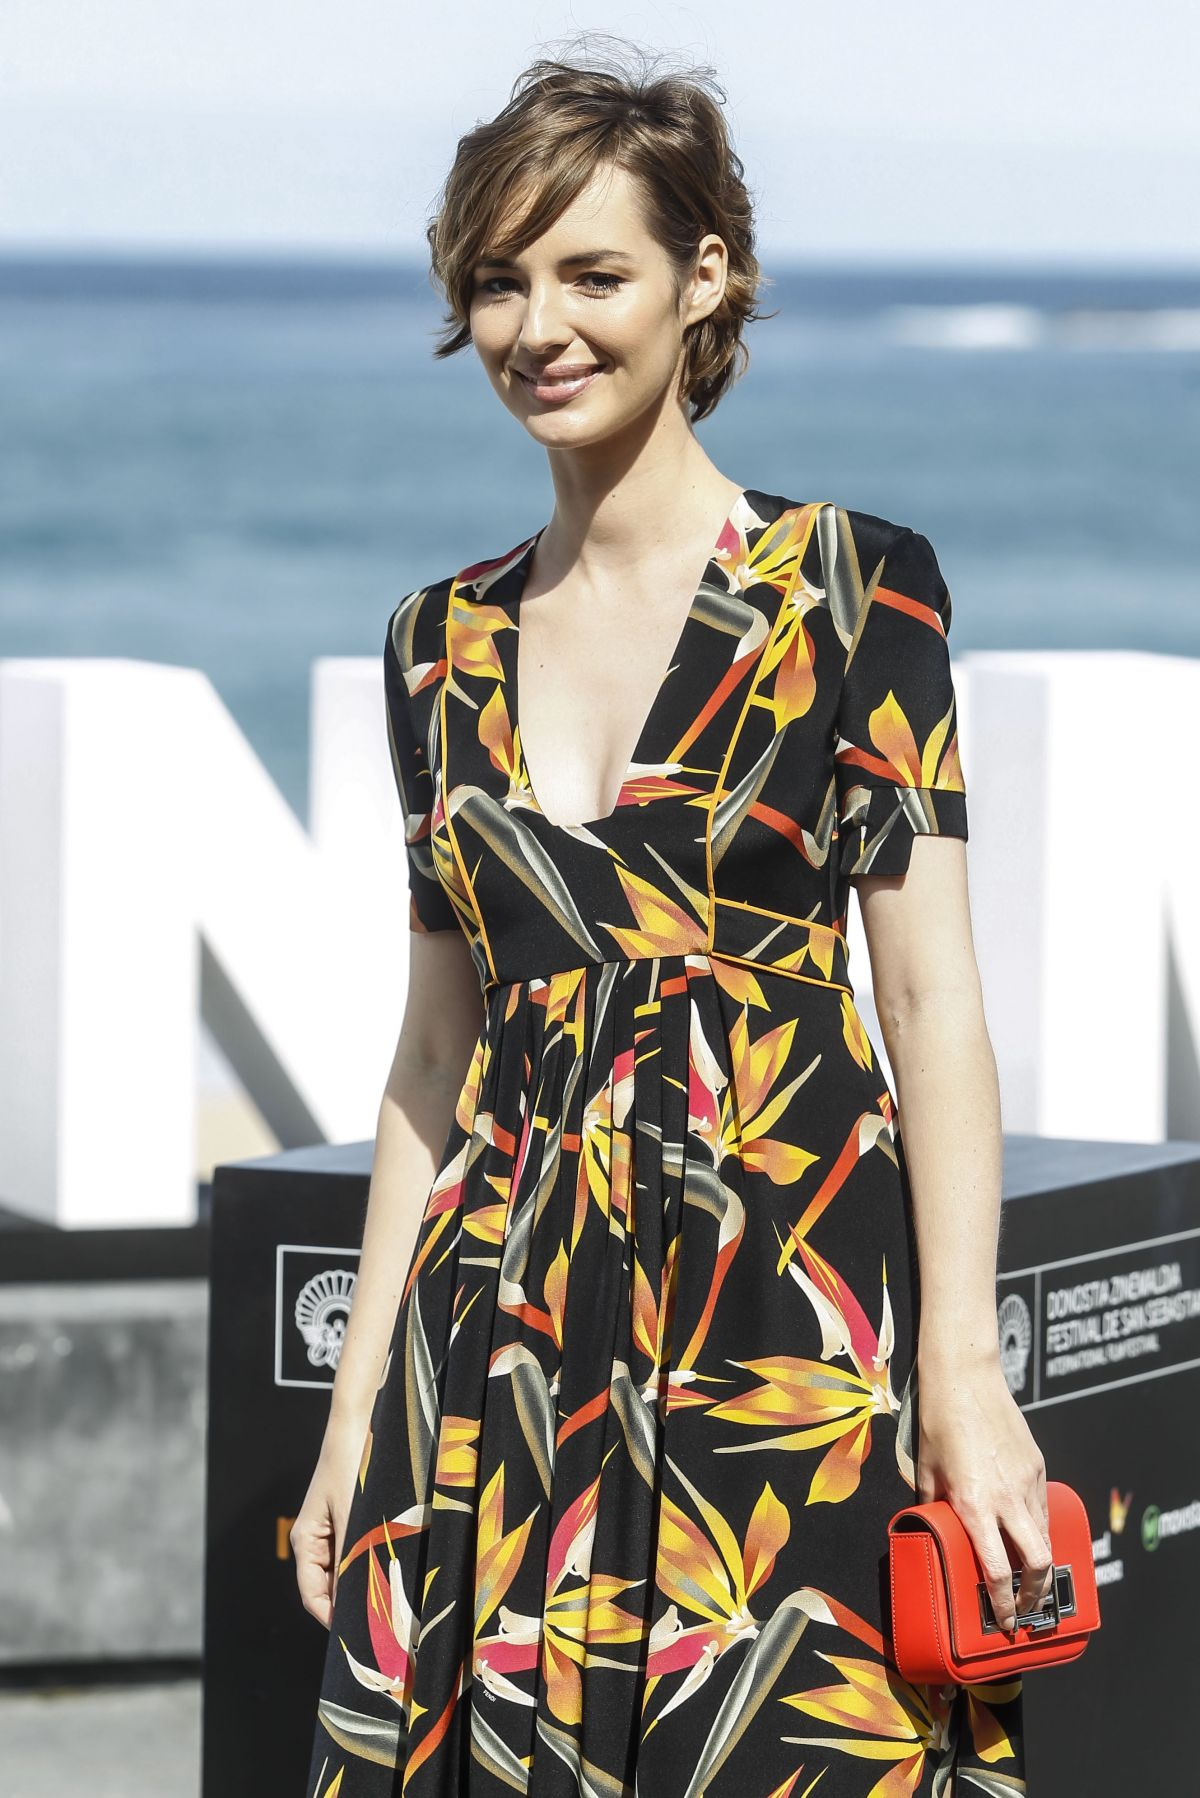 LOUISE BOURGOIN at Les Chevaliers Blancs Photocall at 2015 San Sebastian Film Festival 09/24/2015